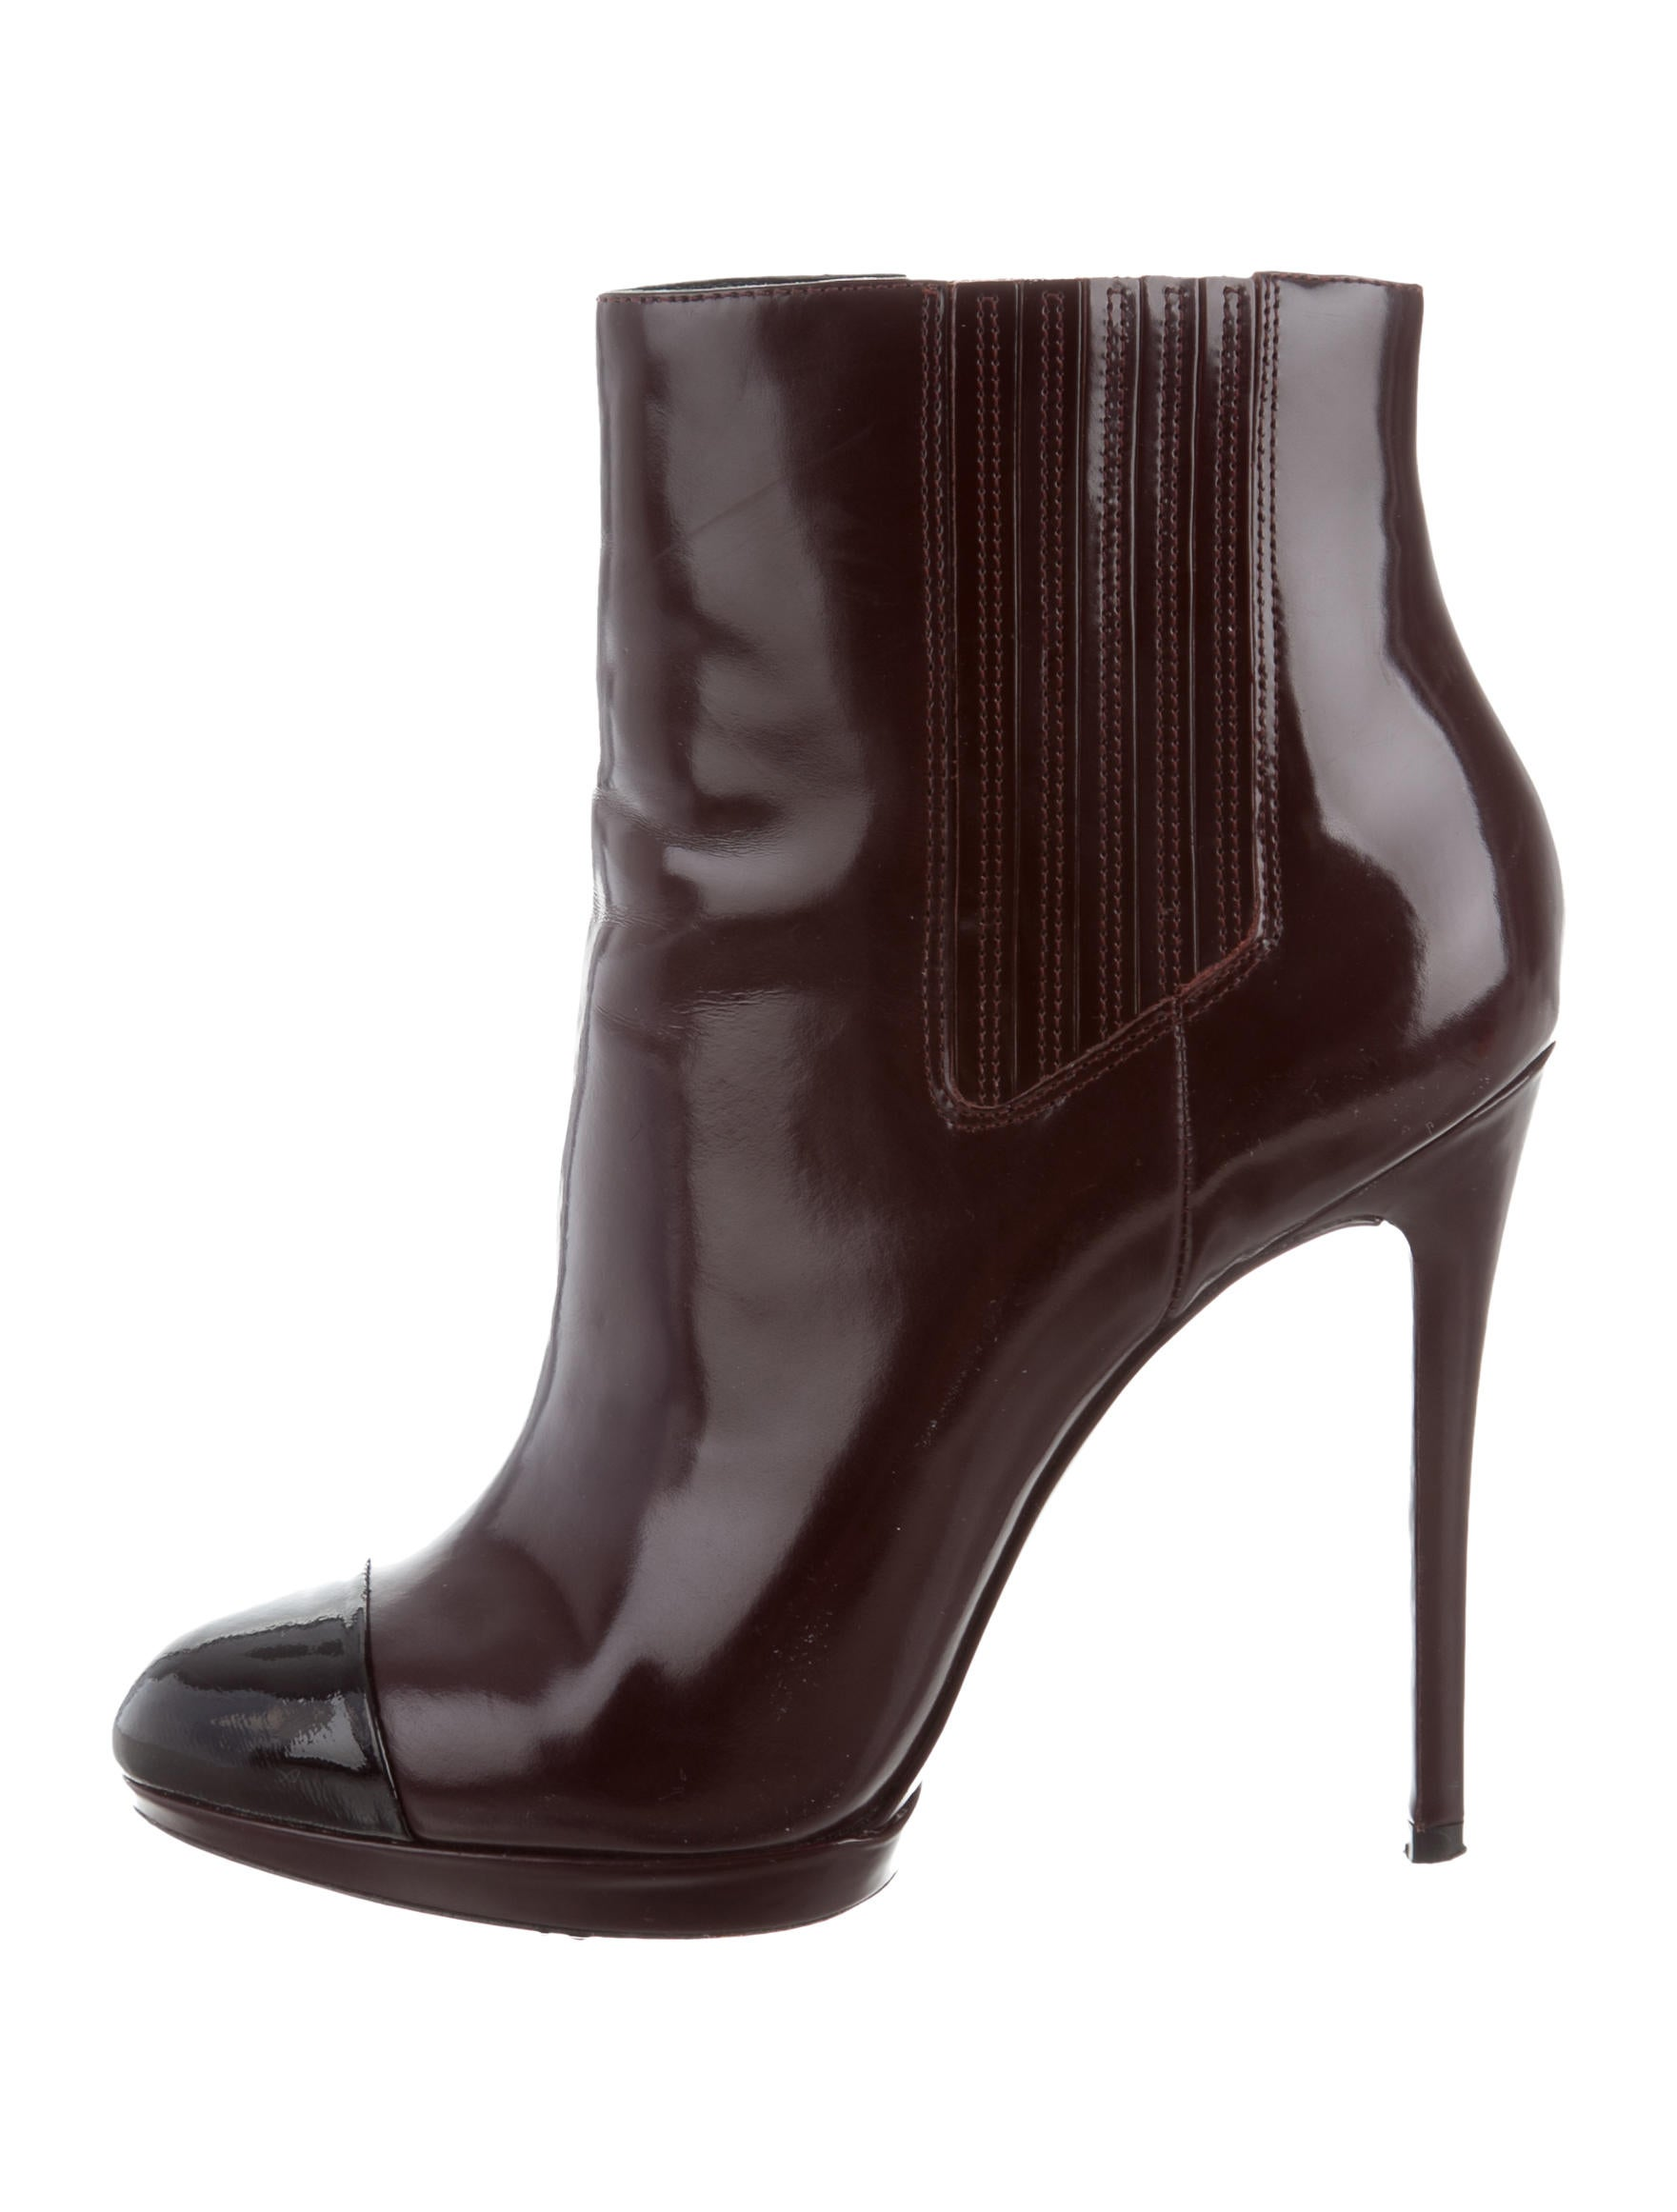 shop offer for sale authentic sale online B Brian Atwood Cap-Toe Leather Ankle Boots great deals for sale for sale very cheap PSXOqoUH1